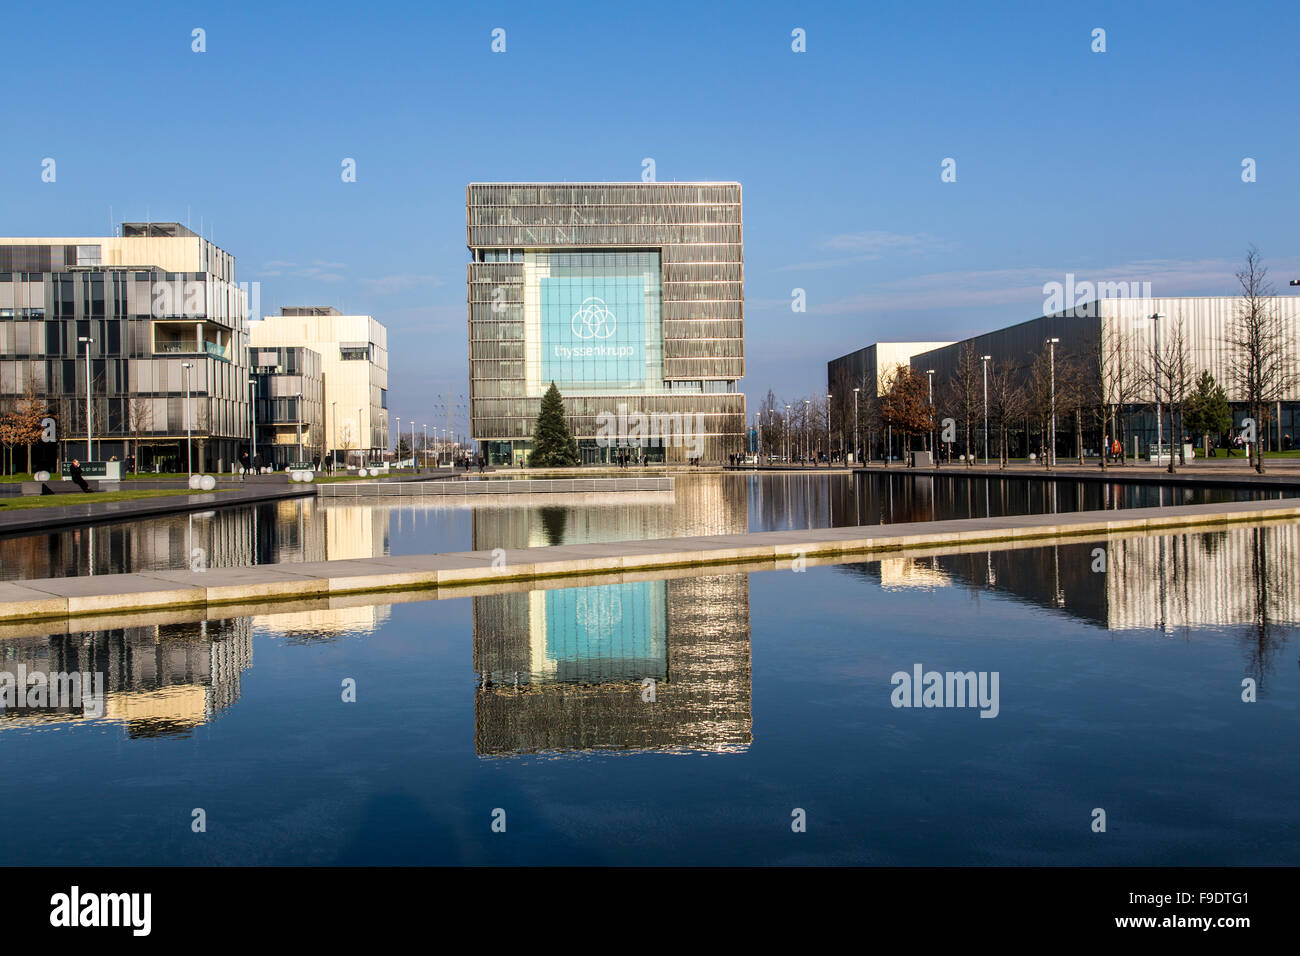 ThyssenKrupp corporate headquarters, with new company logo, in  Essen, Germany - Stock Image